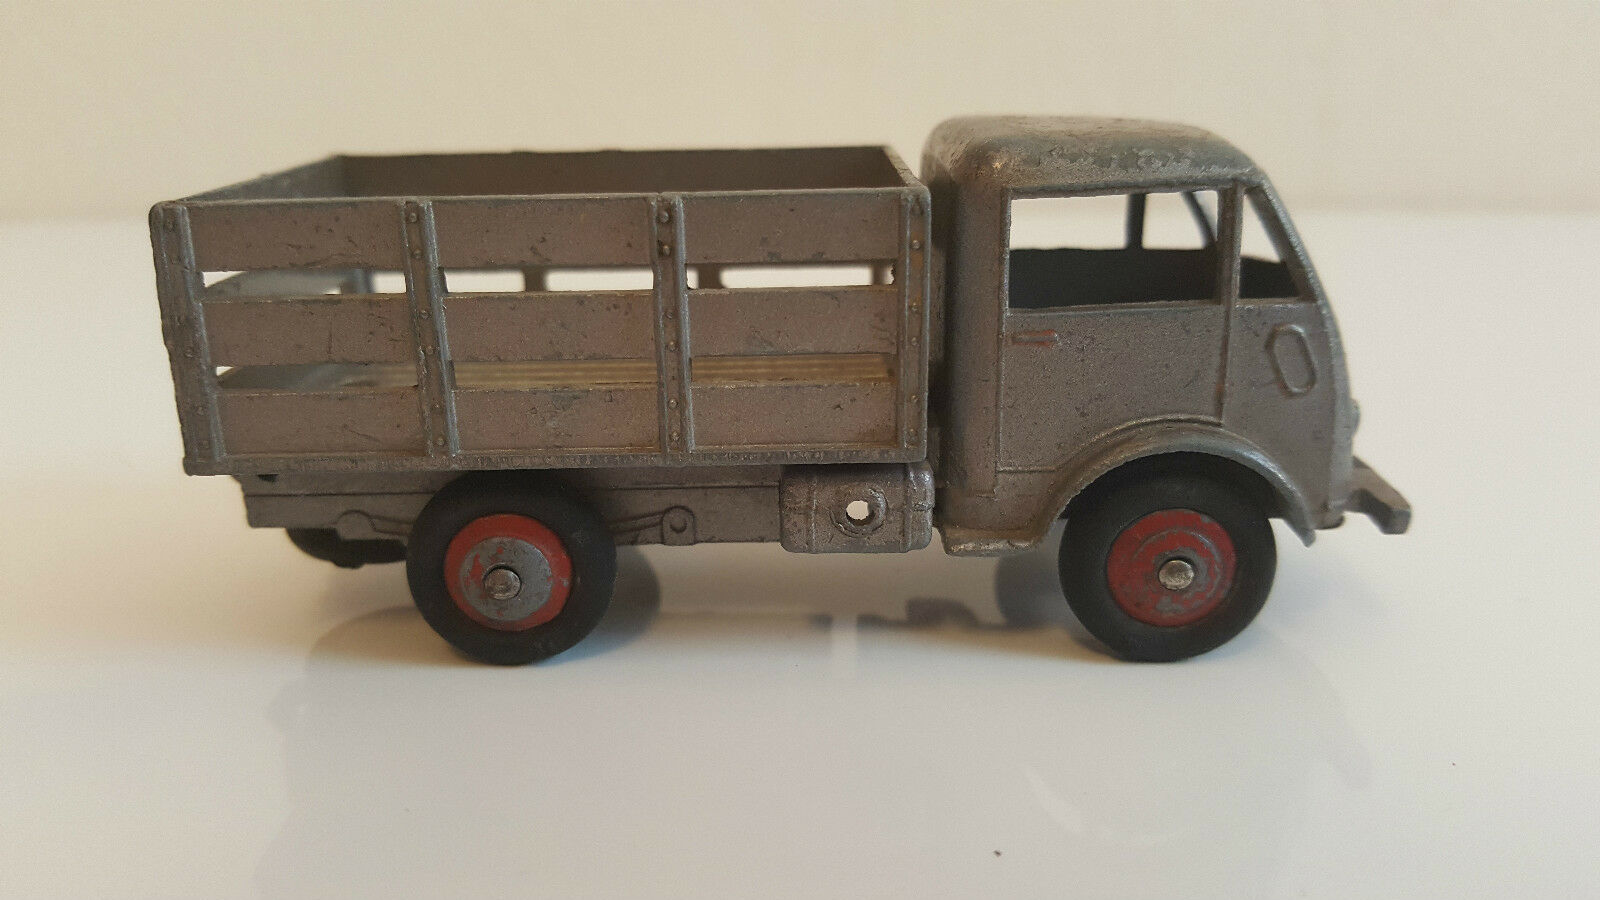 dinky toys 25 a camion ford mara cher b taill re gris m tallis eur 199 00 picclick fr. Black Bedroom Furniture Sets. Home Design Ideas